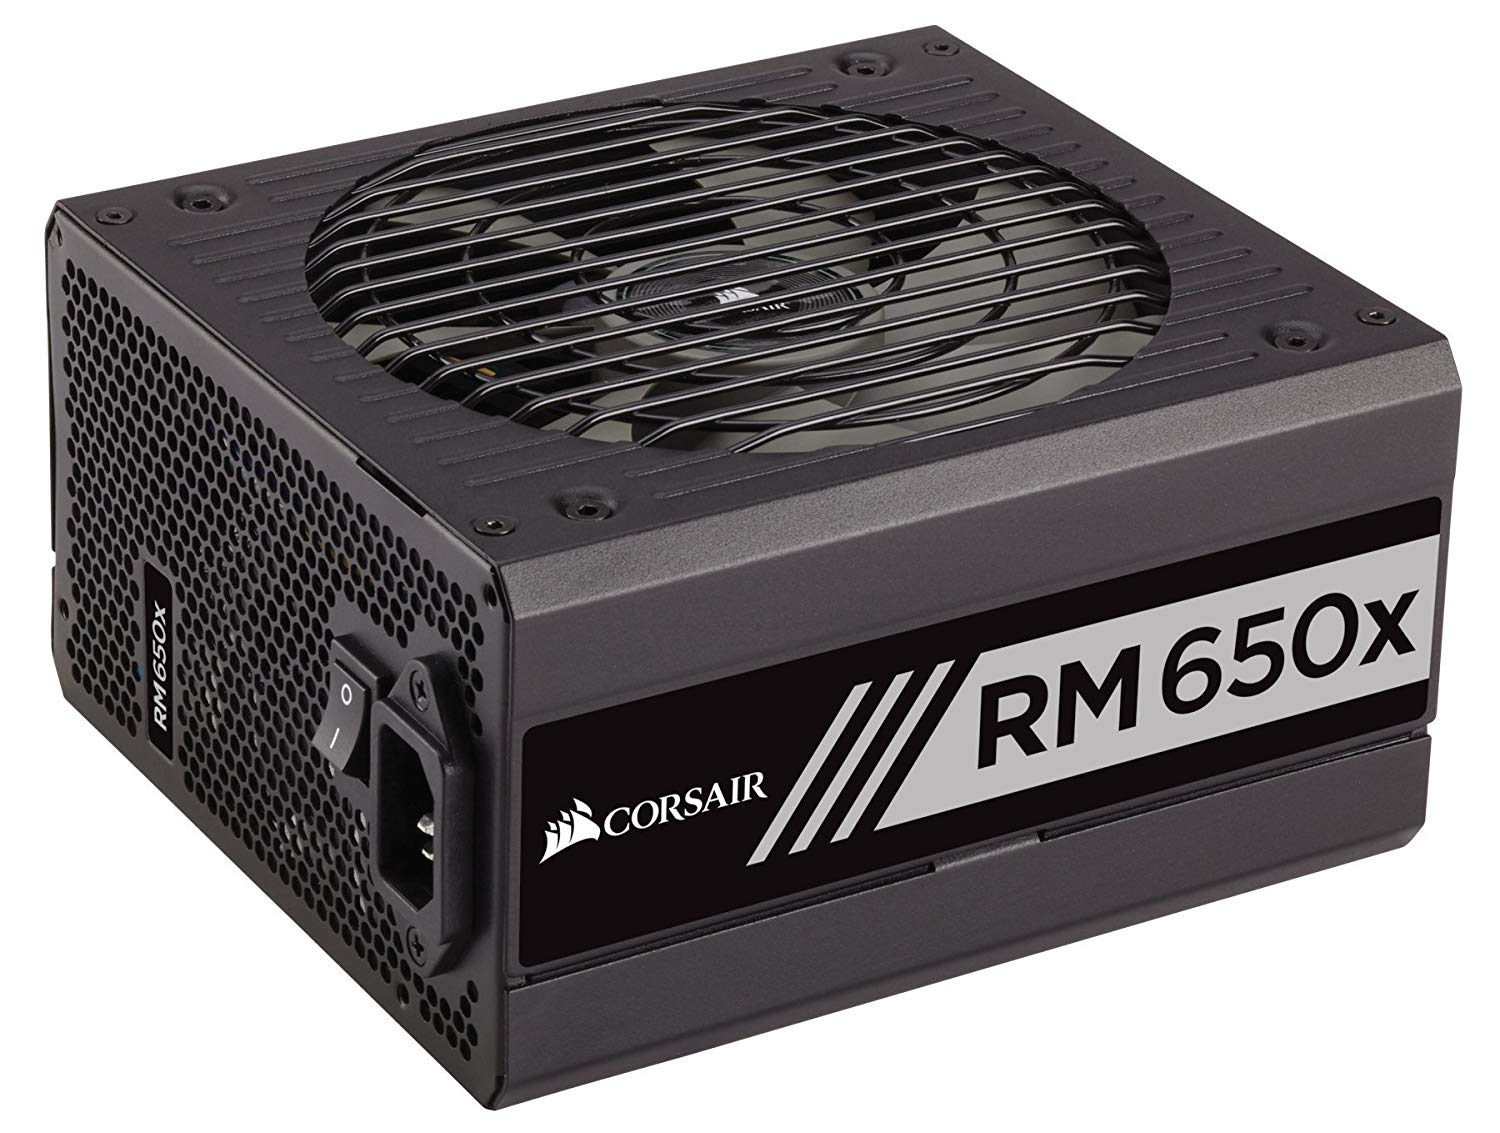 7 PSU - Seasonic FOCUS Plus 650 Gold Power Supply - Best $1000 PC Build 2019